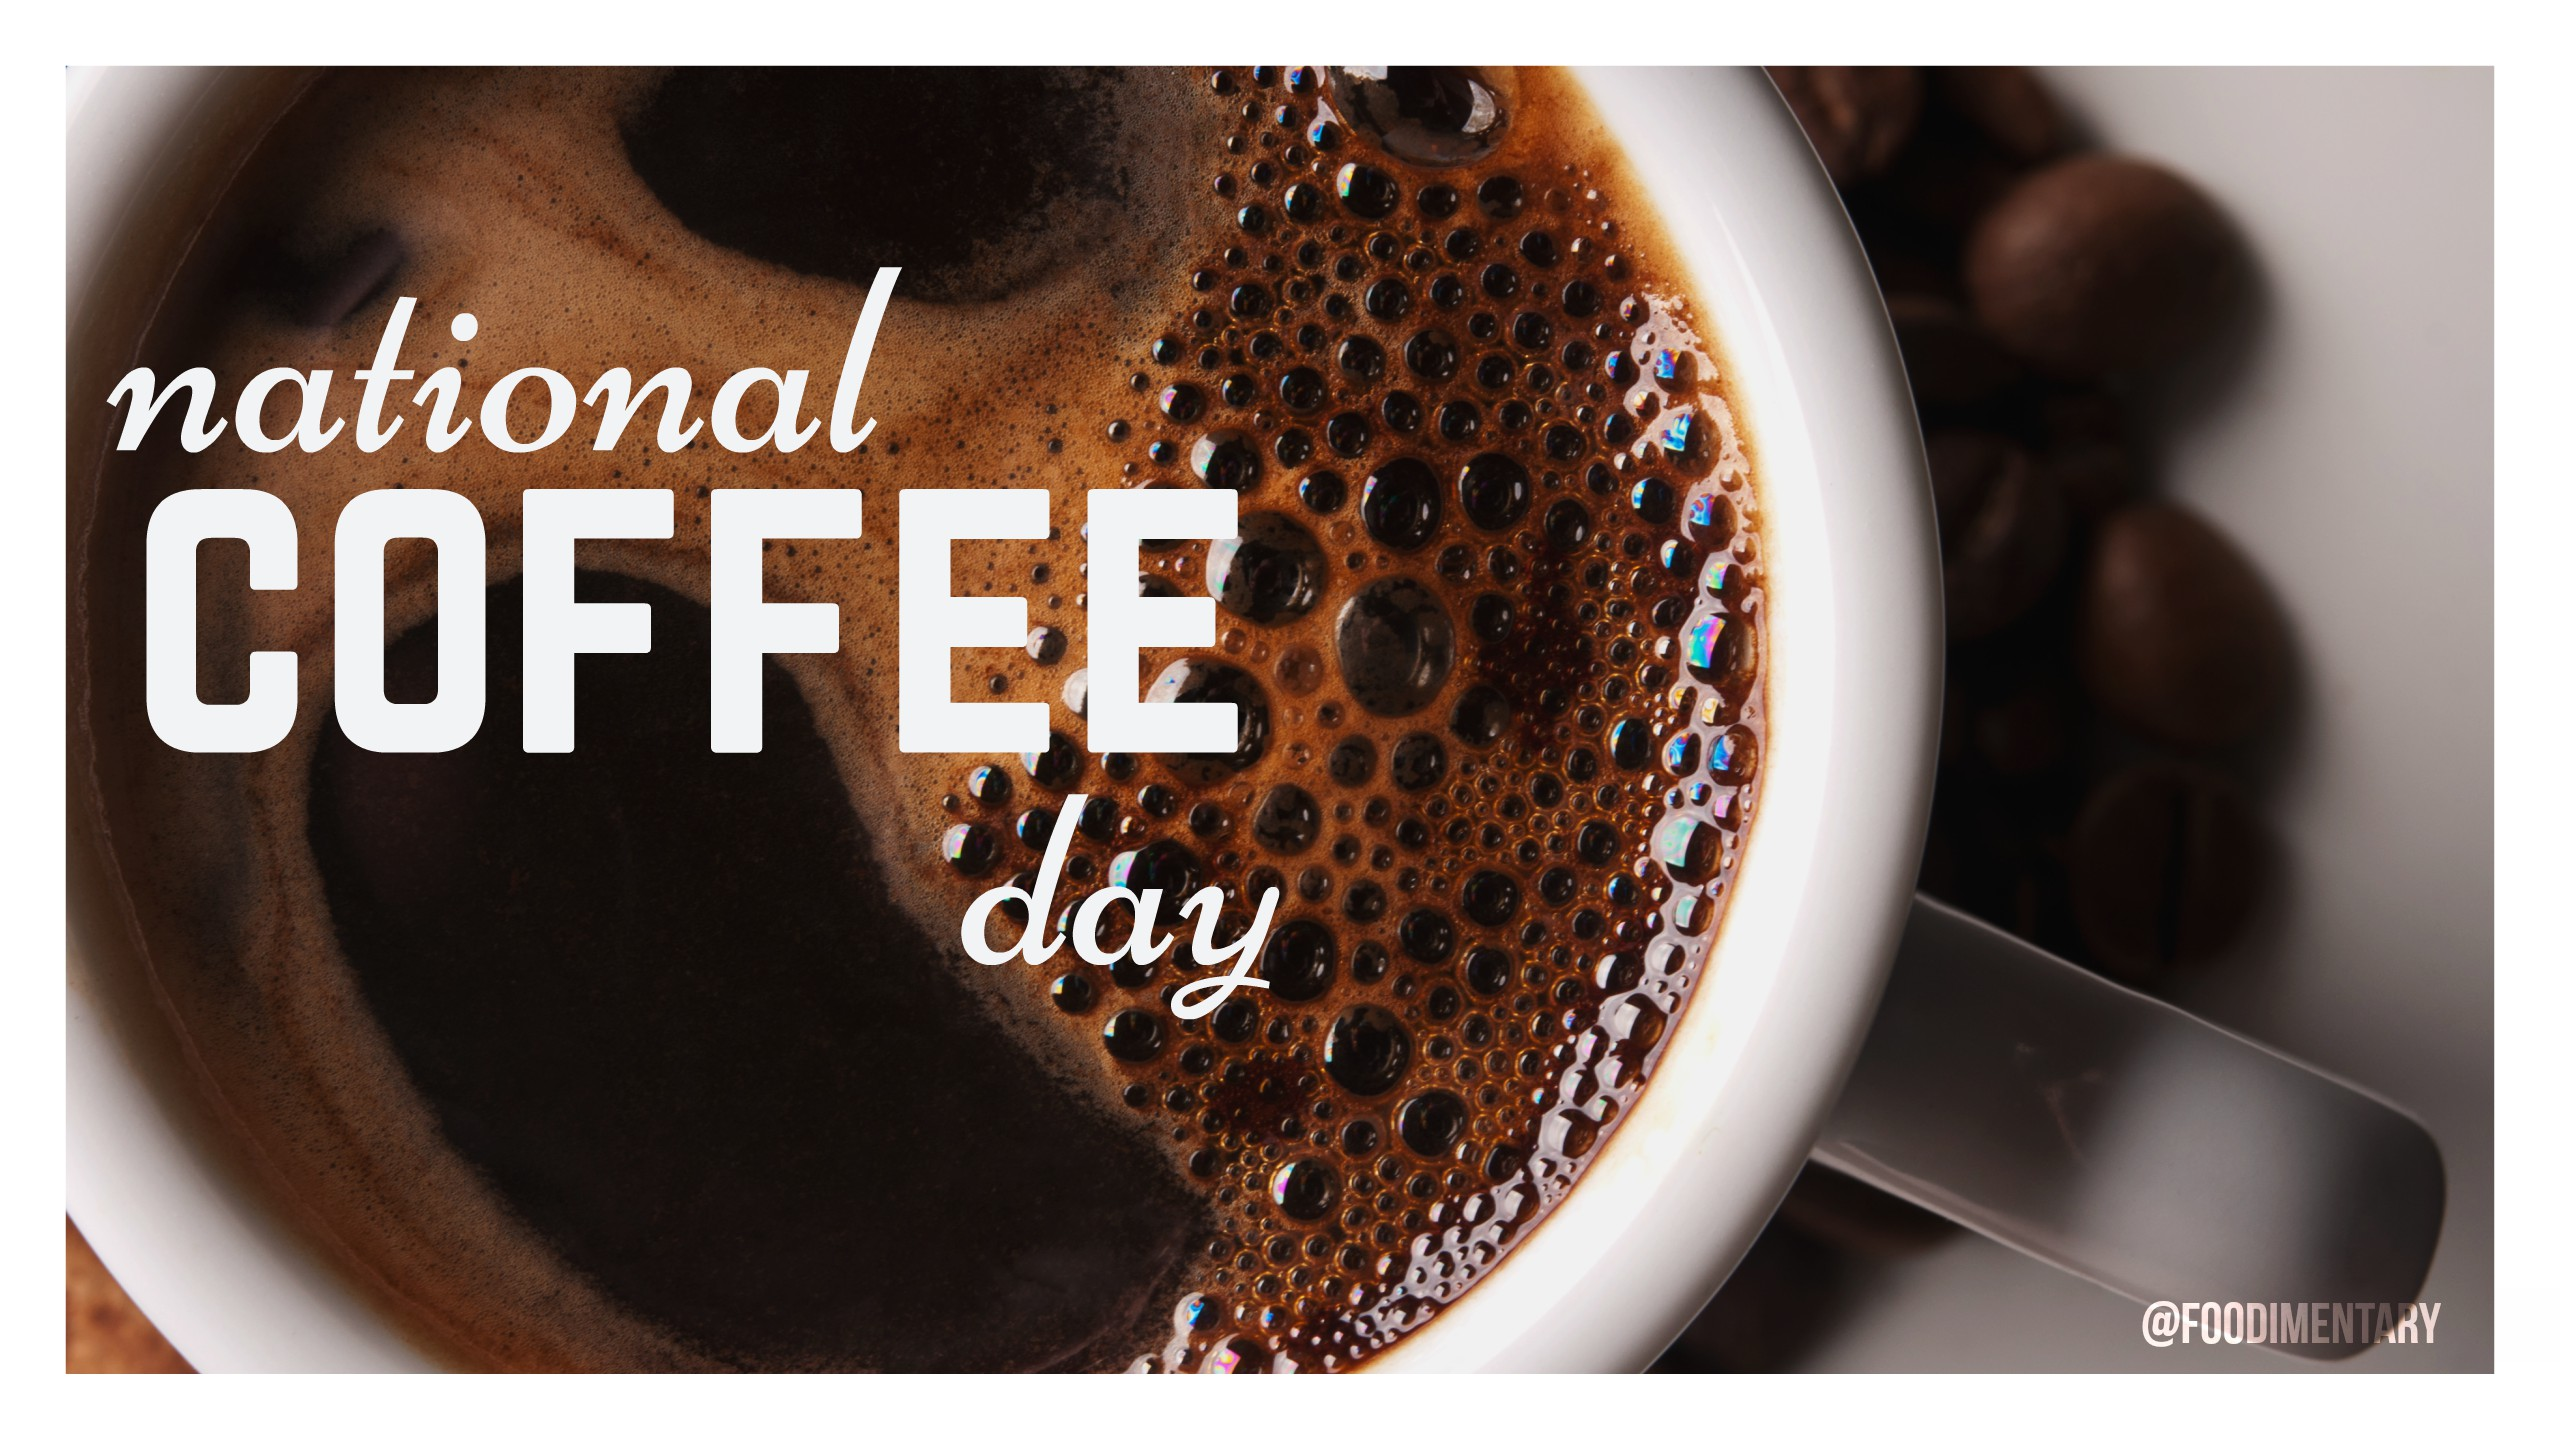 September 29th Is National Coffee Day